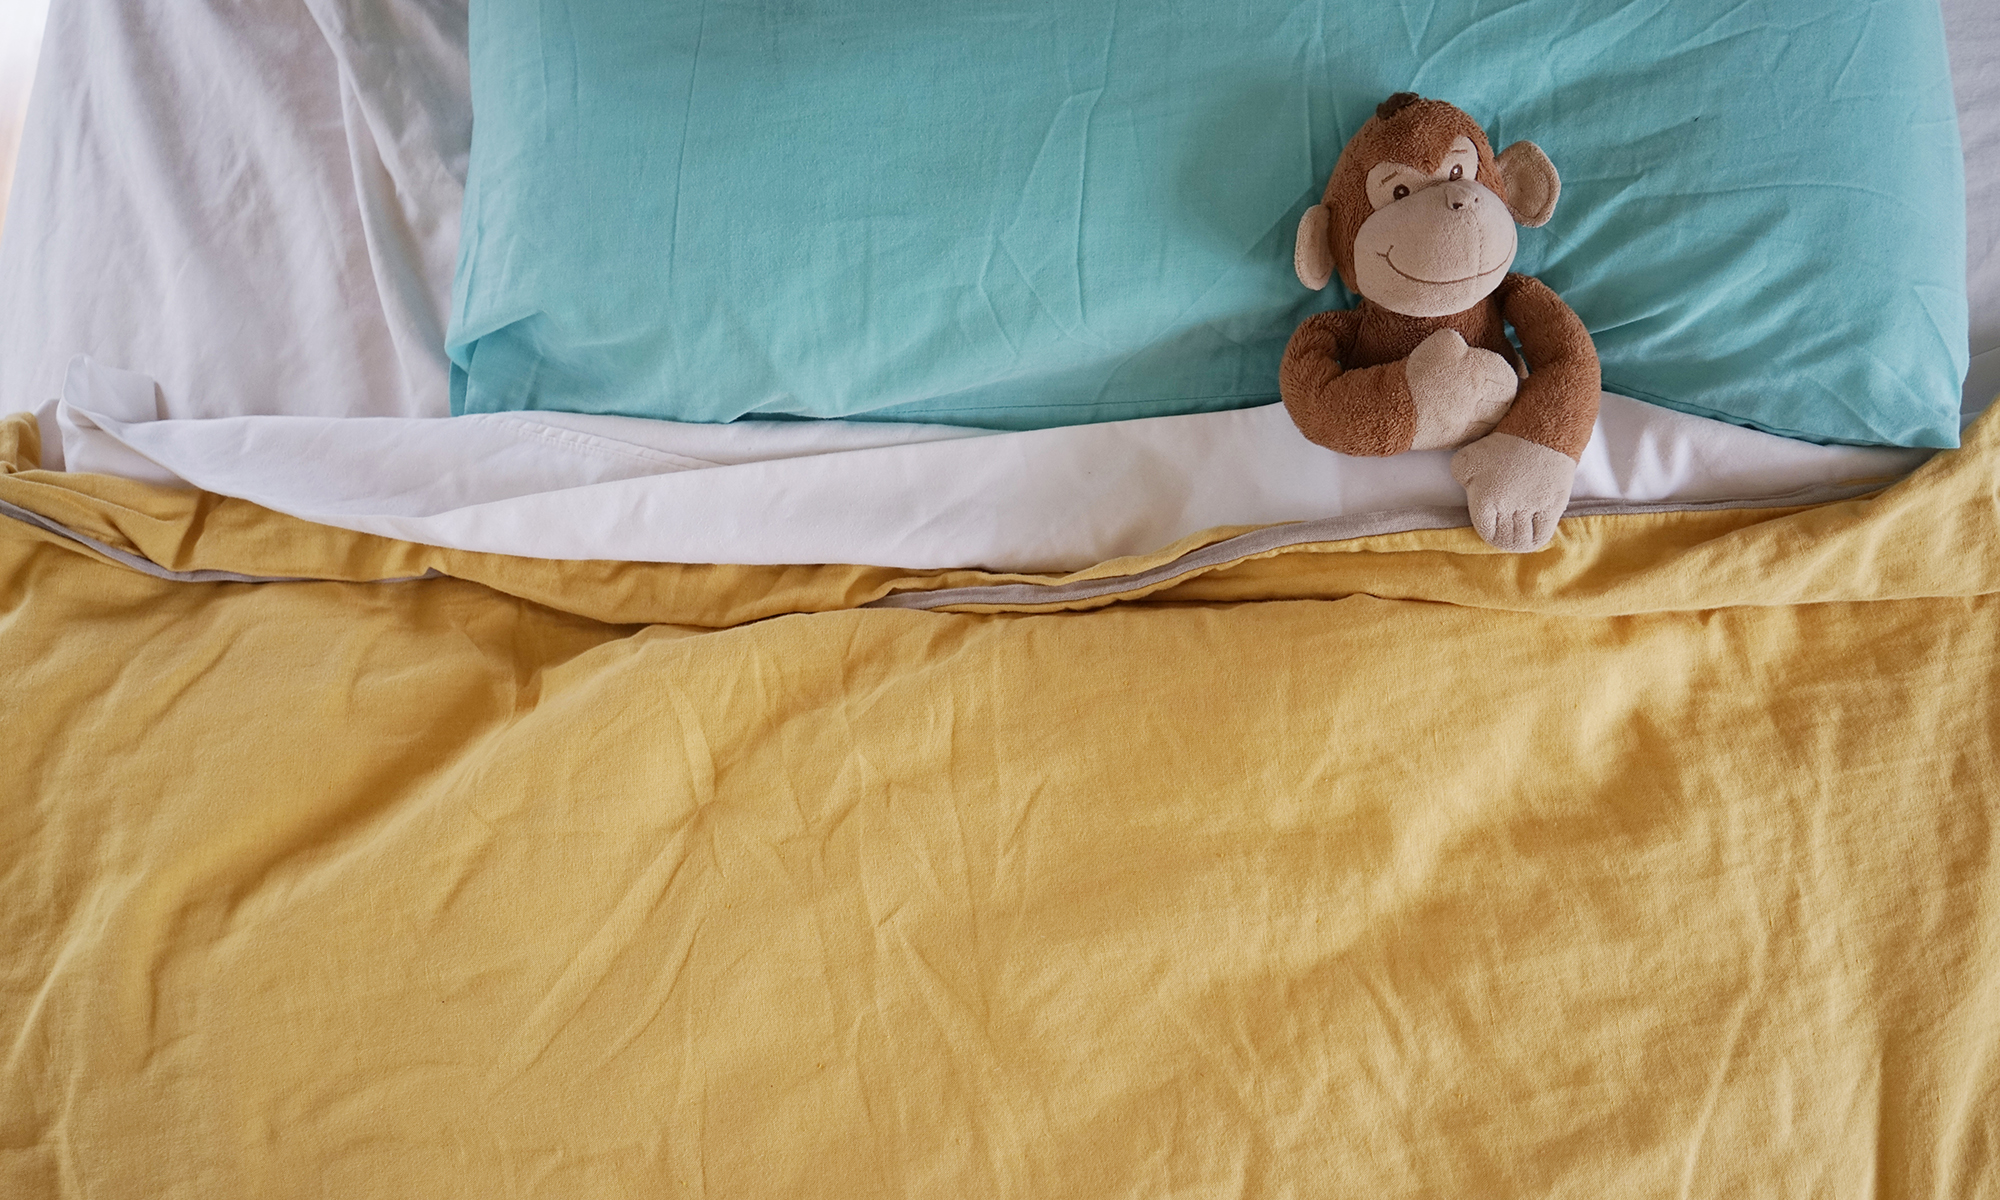 Monkey laying in bed imagining music